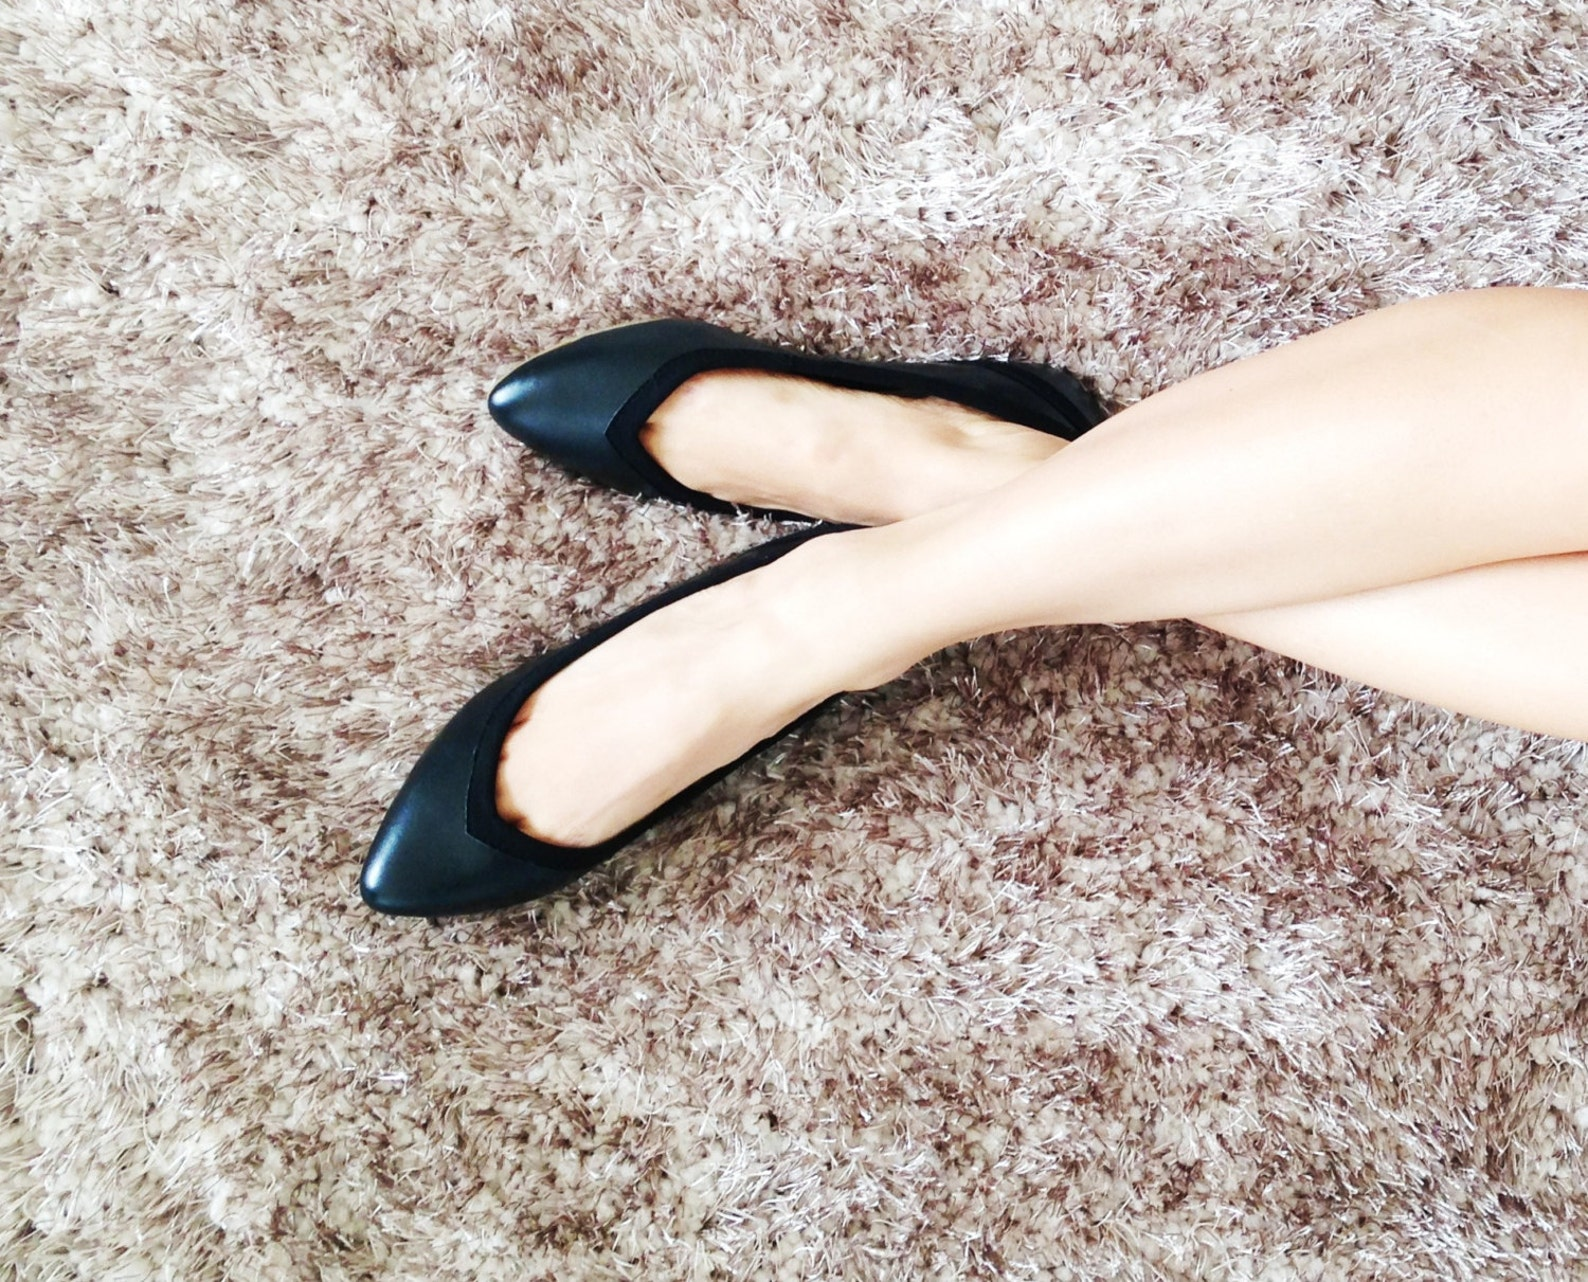 on sale! vegan black ballet flats // full black noir // pointed sexy elegant flats - from 60 to 30dls